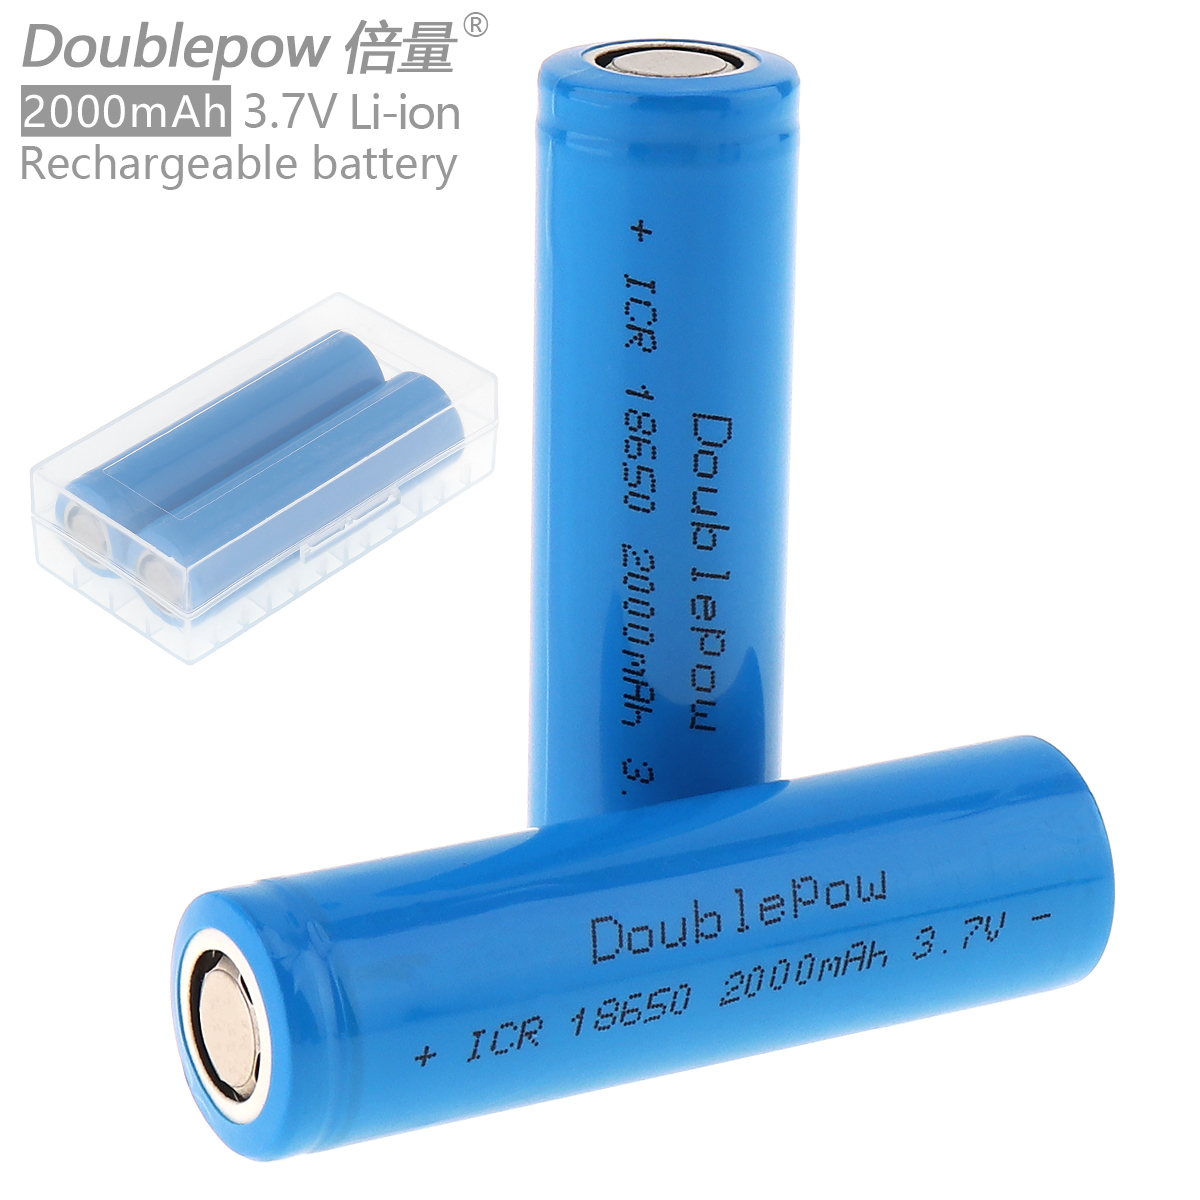 Doublepow 2pcs 18650 2000mAh 3.7V Li-ion Rechargeable Battery with Safety Relief Valve + Portable Battery Storage Box